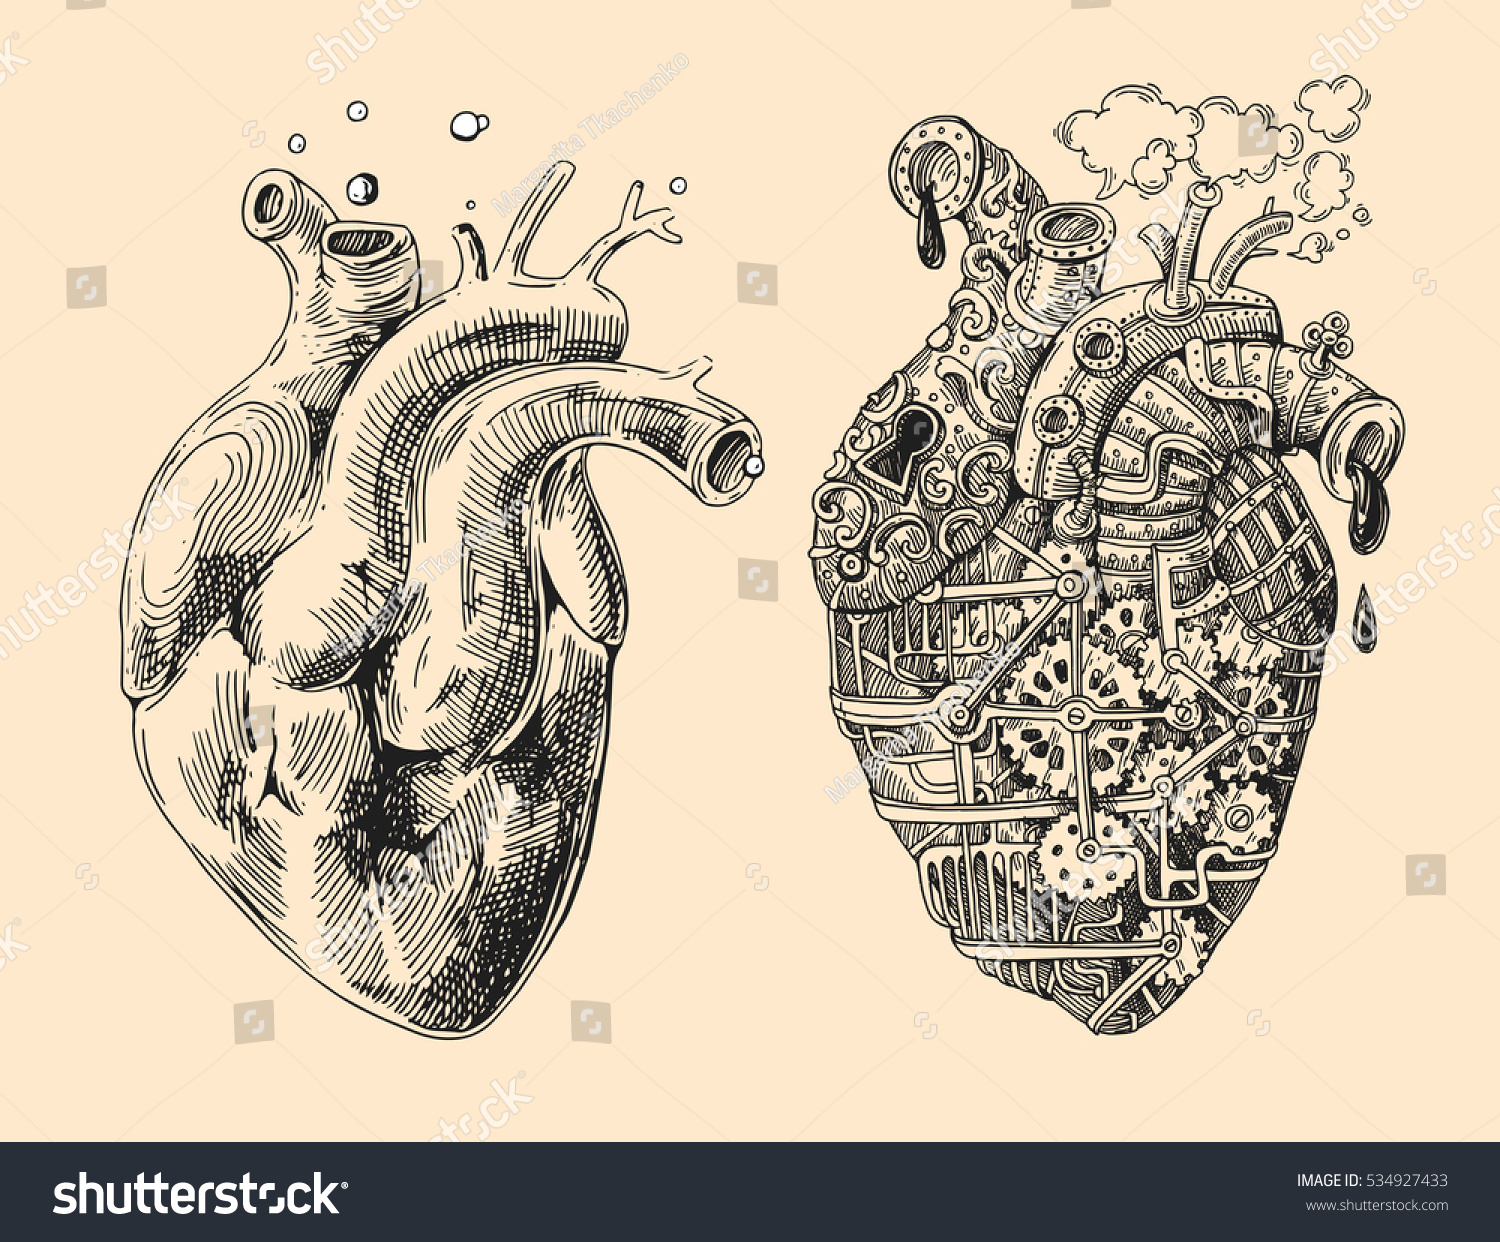 Illustration 2 Hearts Mechanical Alive Hand Stock Vector (Royalty ...